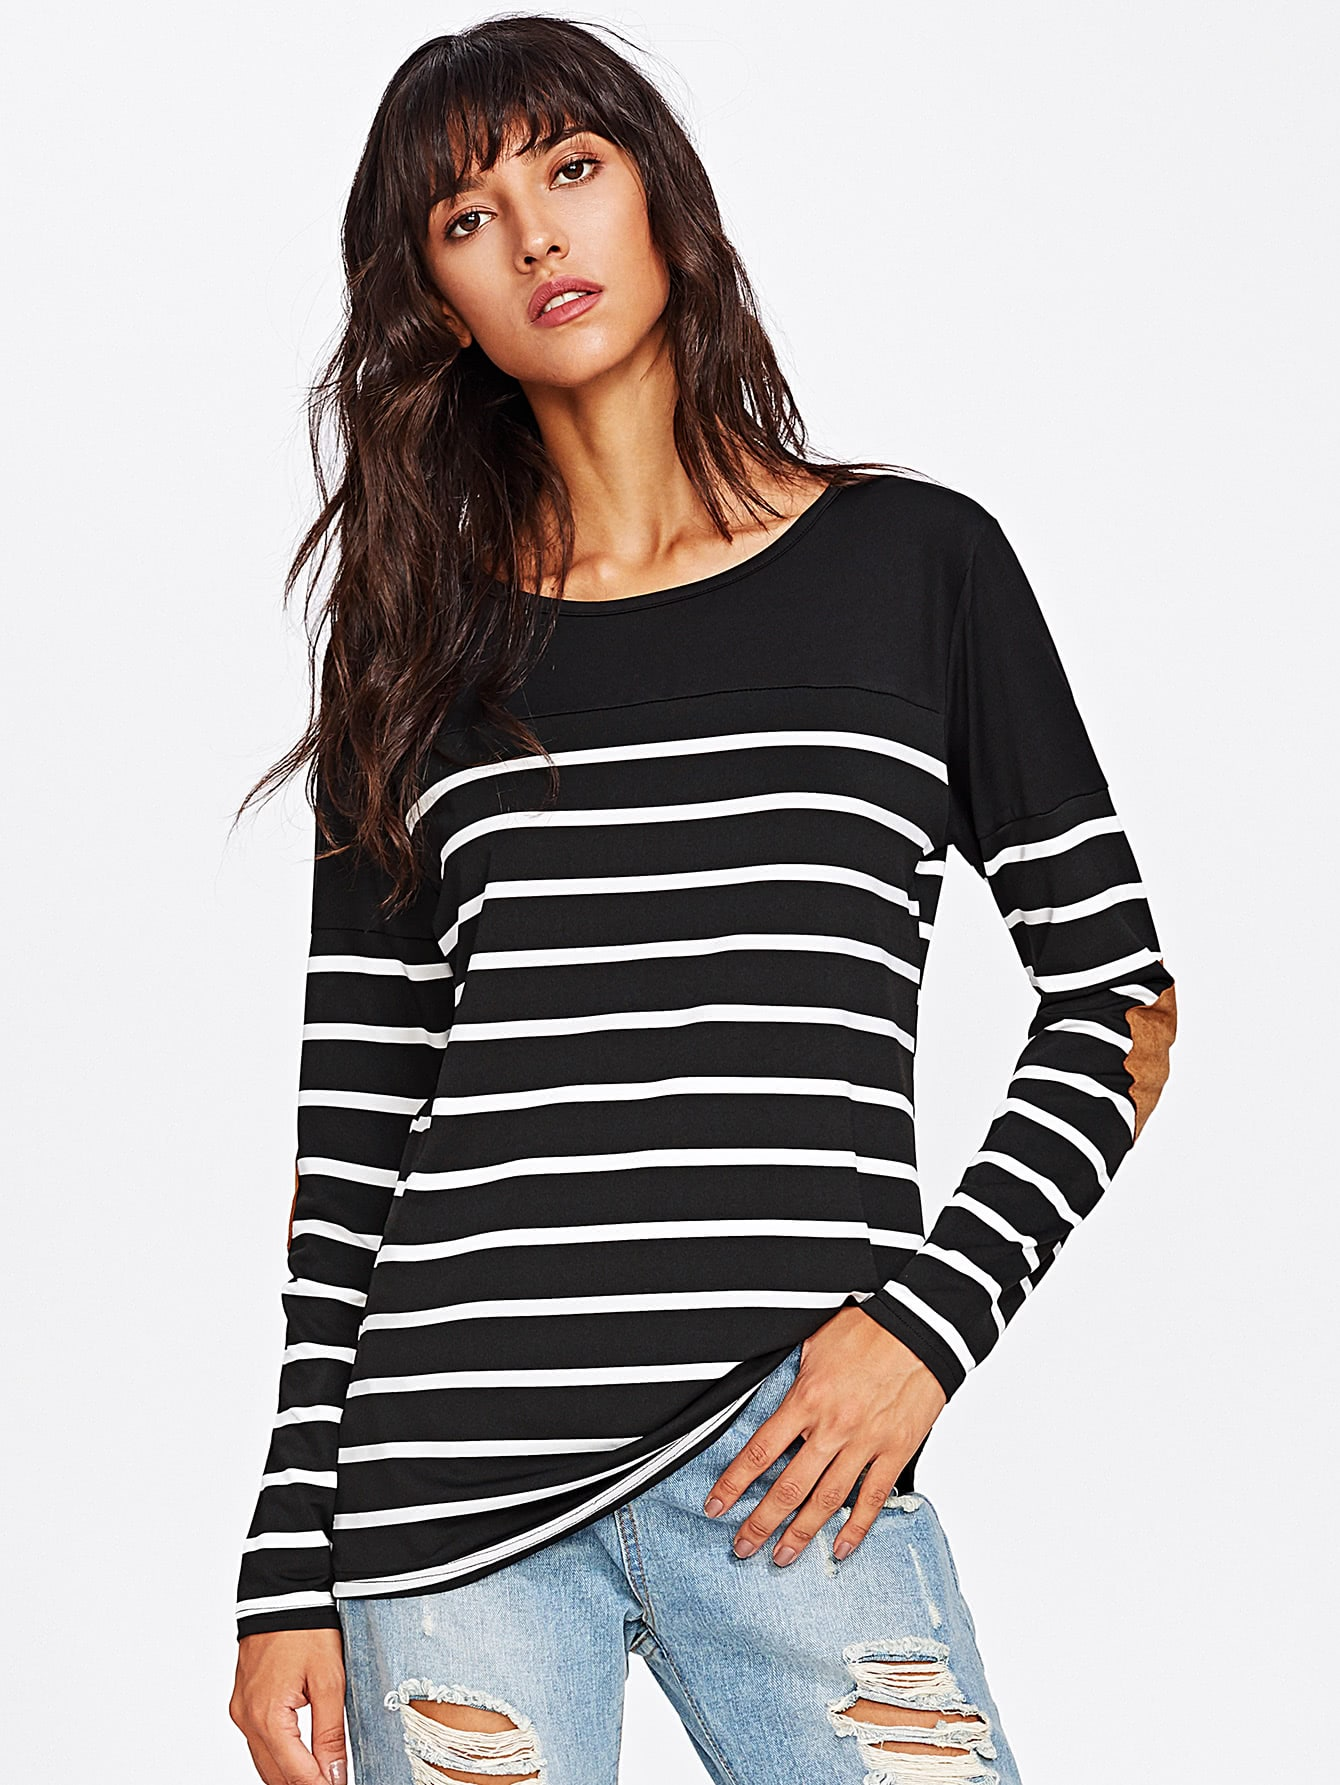 Elbow Patch Striped Tee tee170911110